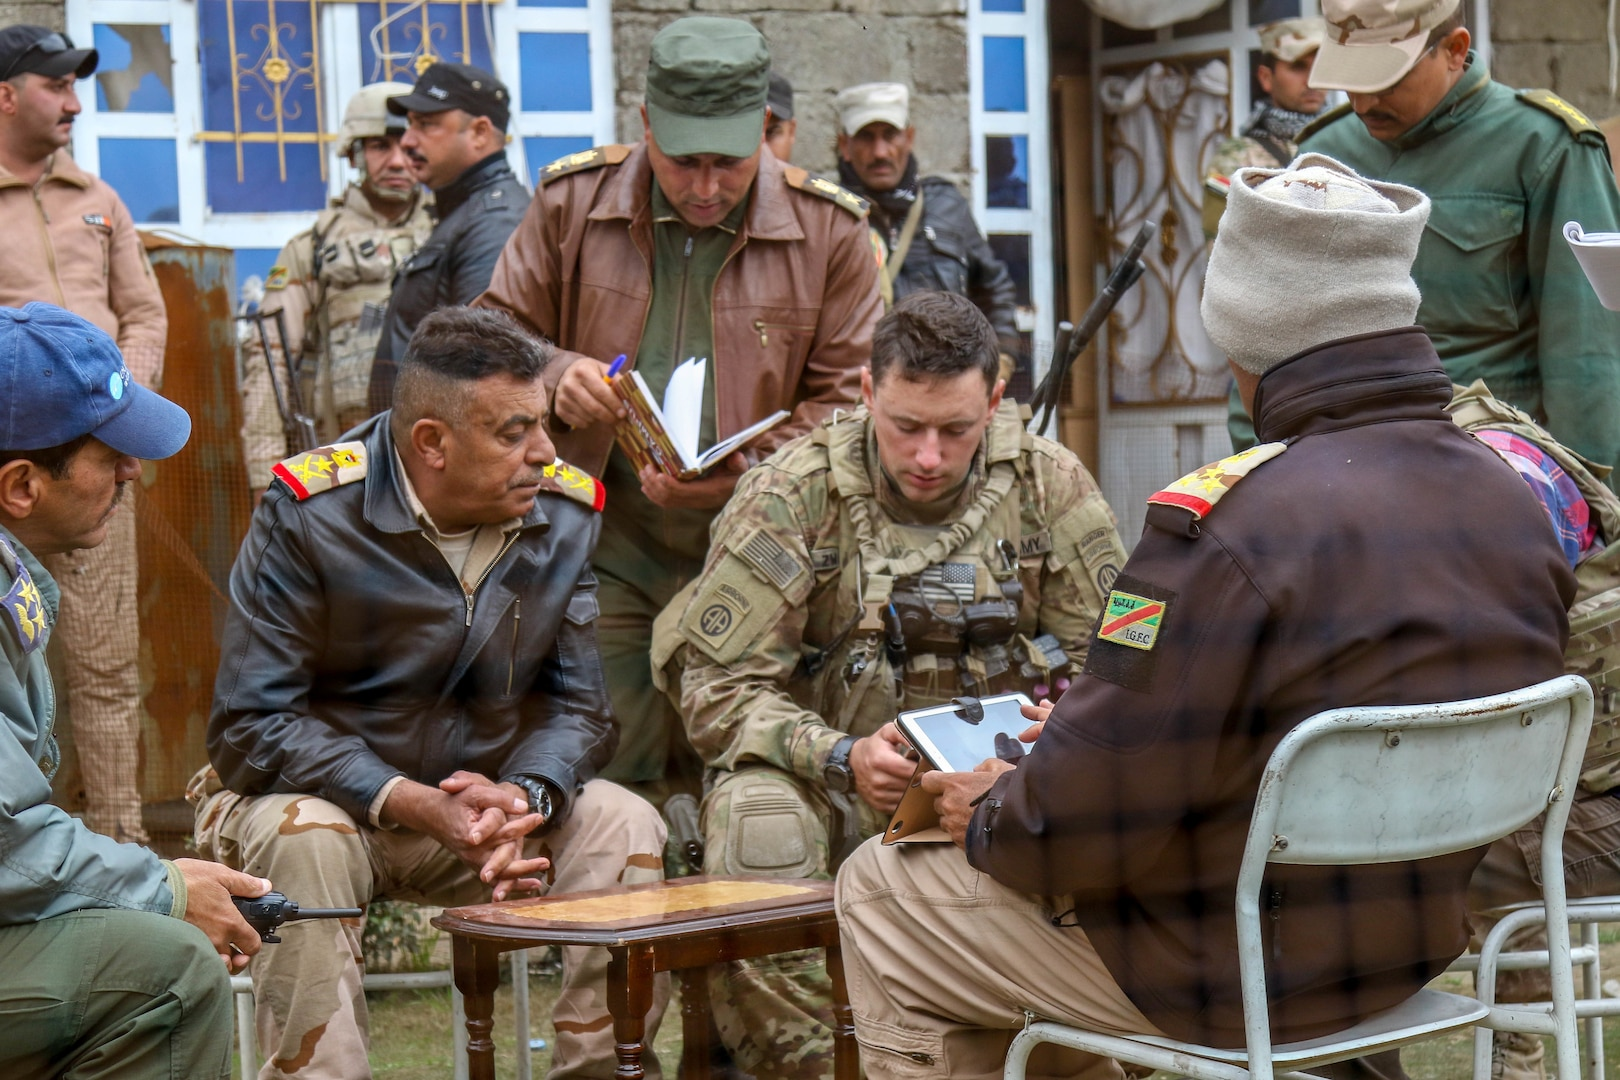 U.S. Army Capt. Mark G. Zwirgzdas, deployed in support of Combined Joint Task Force-Operation Inherent Resolve, assigned to 2nd Brigade Combat Team, 82nd Airborne Division, discusses operations during the offensive to liberate West Mosul from ISIS with 9th Iraqi Army Division leaders near Al Tarab, Iraq, March 19, 2017. The 2nd BCT, 82nd Abn, Div., enables their Iraqi security forces partners through the advise and assist mission, contributing planning, intelligence collection and analysis, force protection, and precision fires to achieve the military defeat of ISIS. CJTF-OIR is the global Coalition to defeat ISIS in Iraq and Syria. (U.S. Army photo by Staff Sgt. Jason Hull)